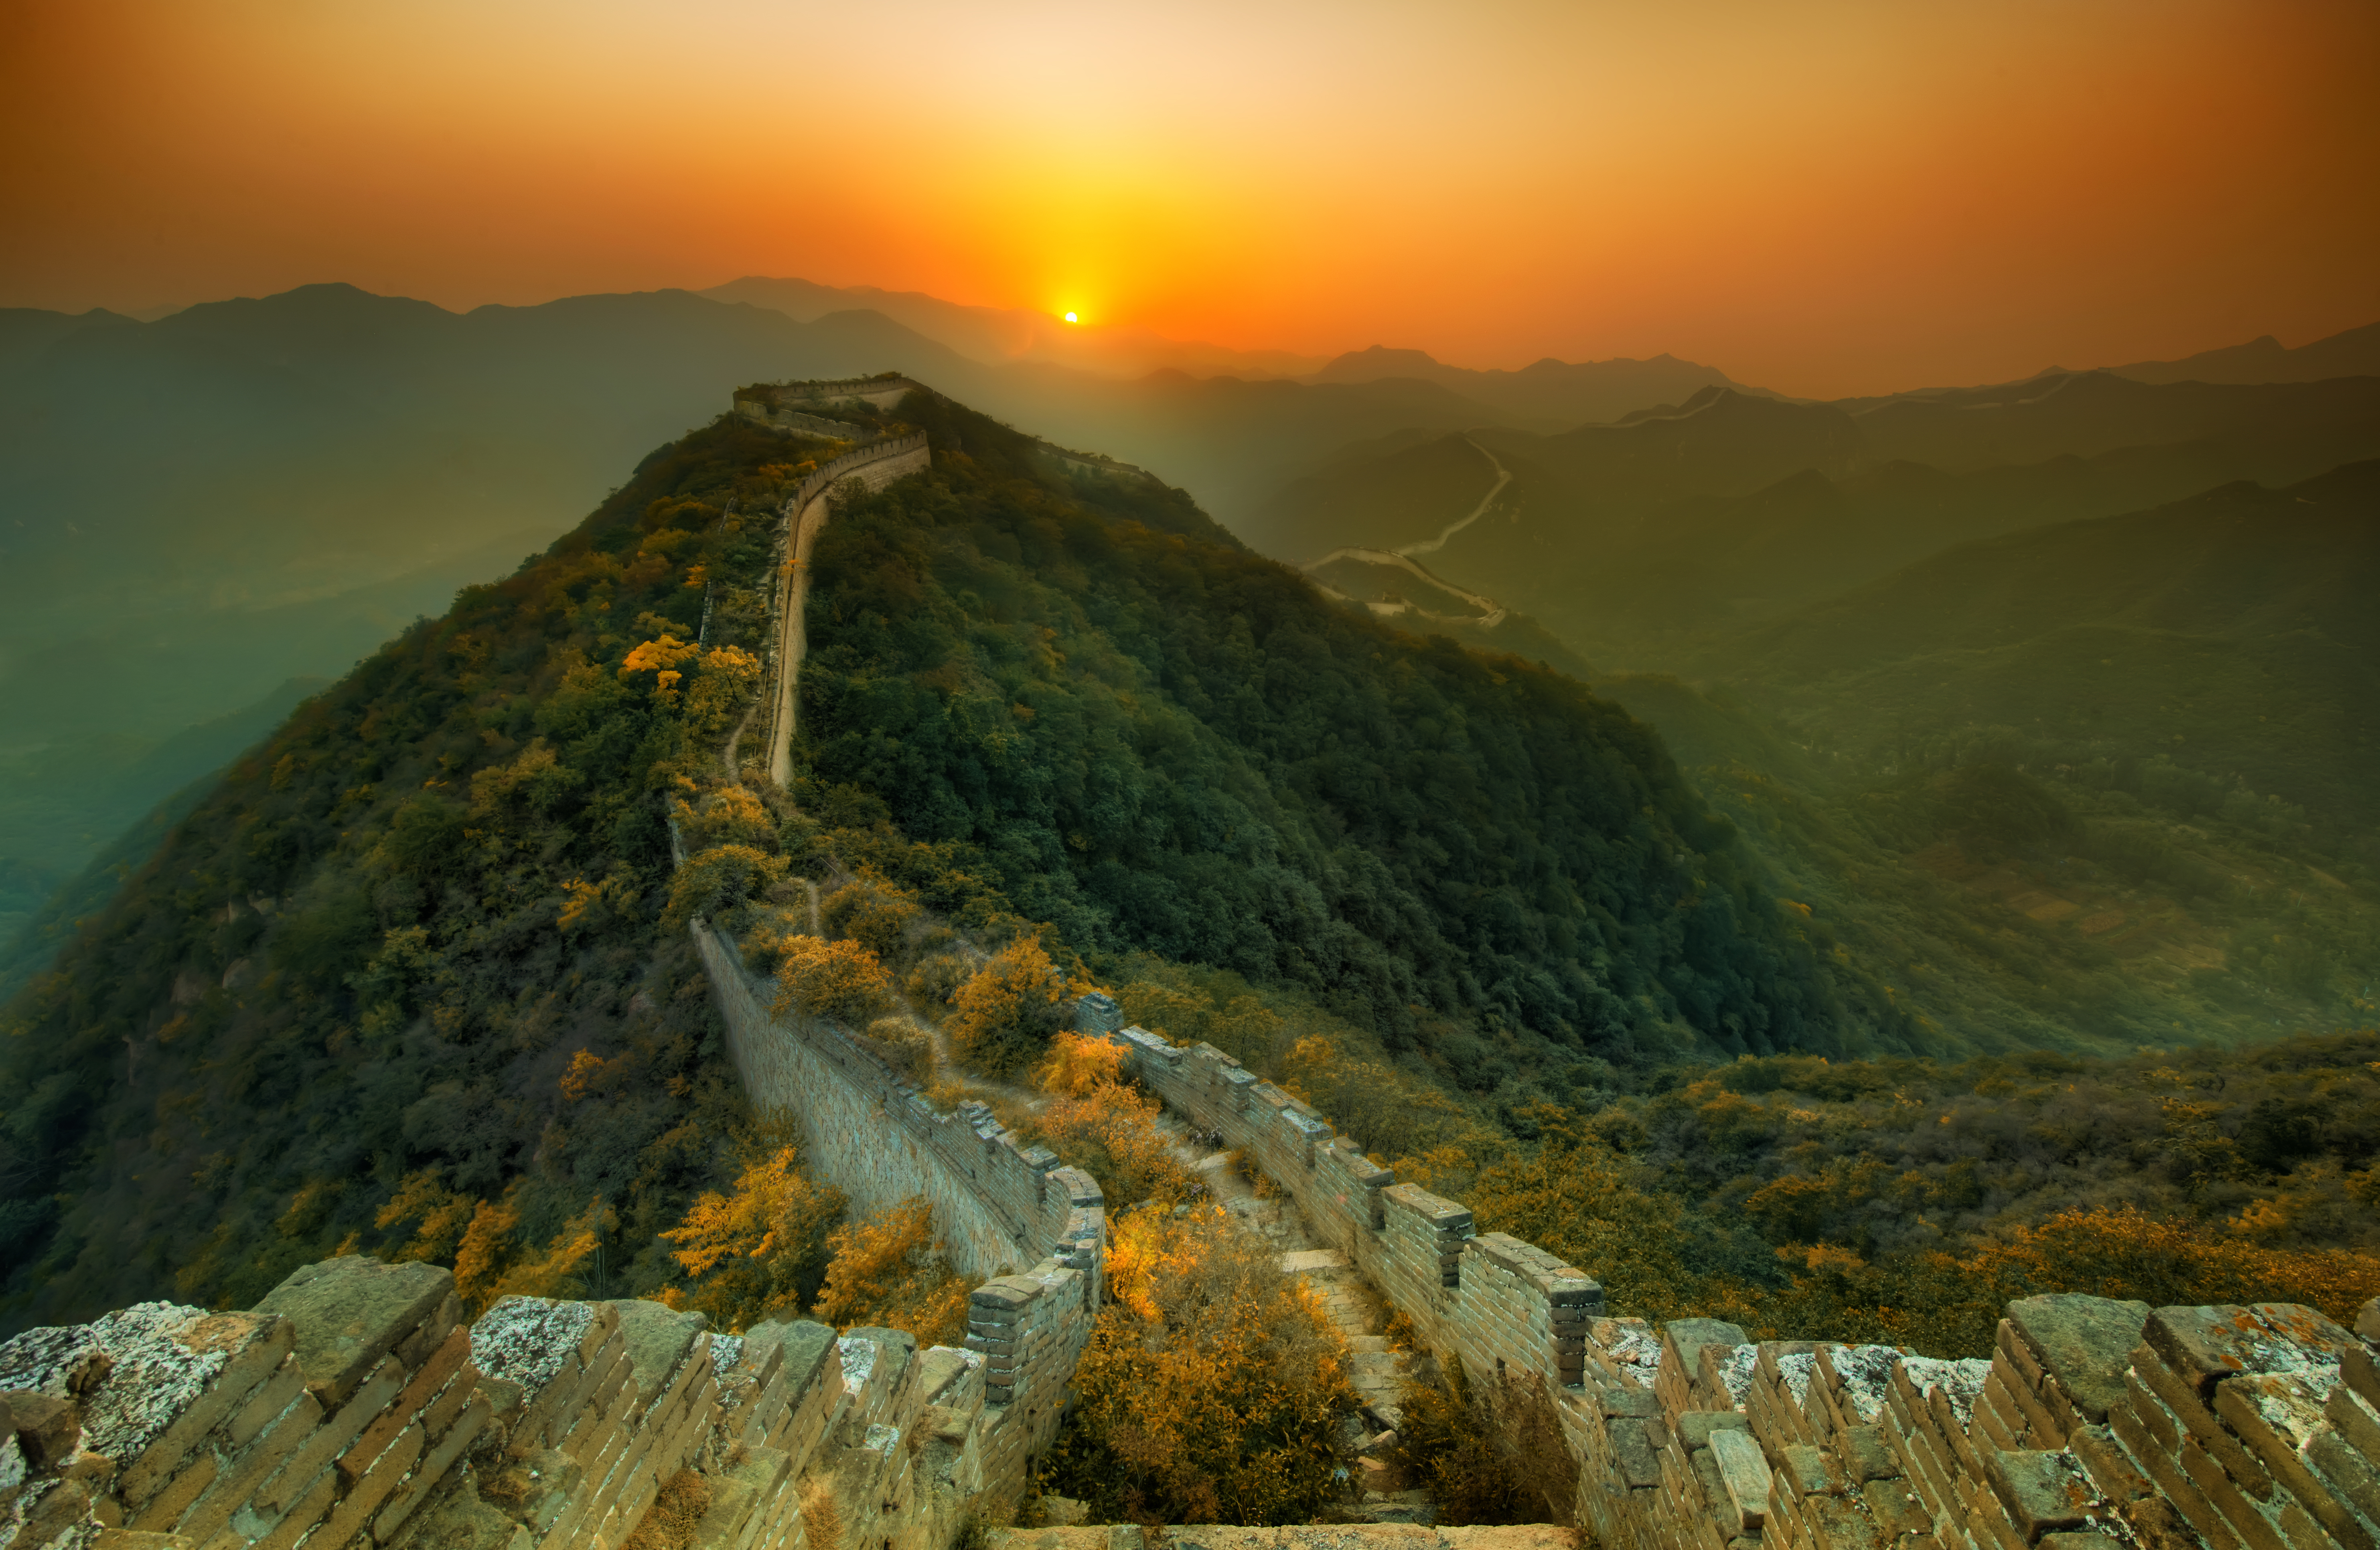 35 Great Wall Of China HD Wallpapers | Backgrounds ...